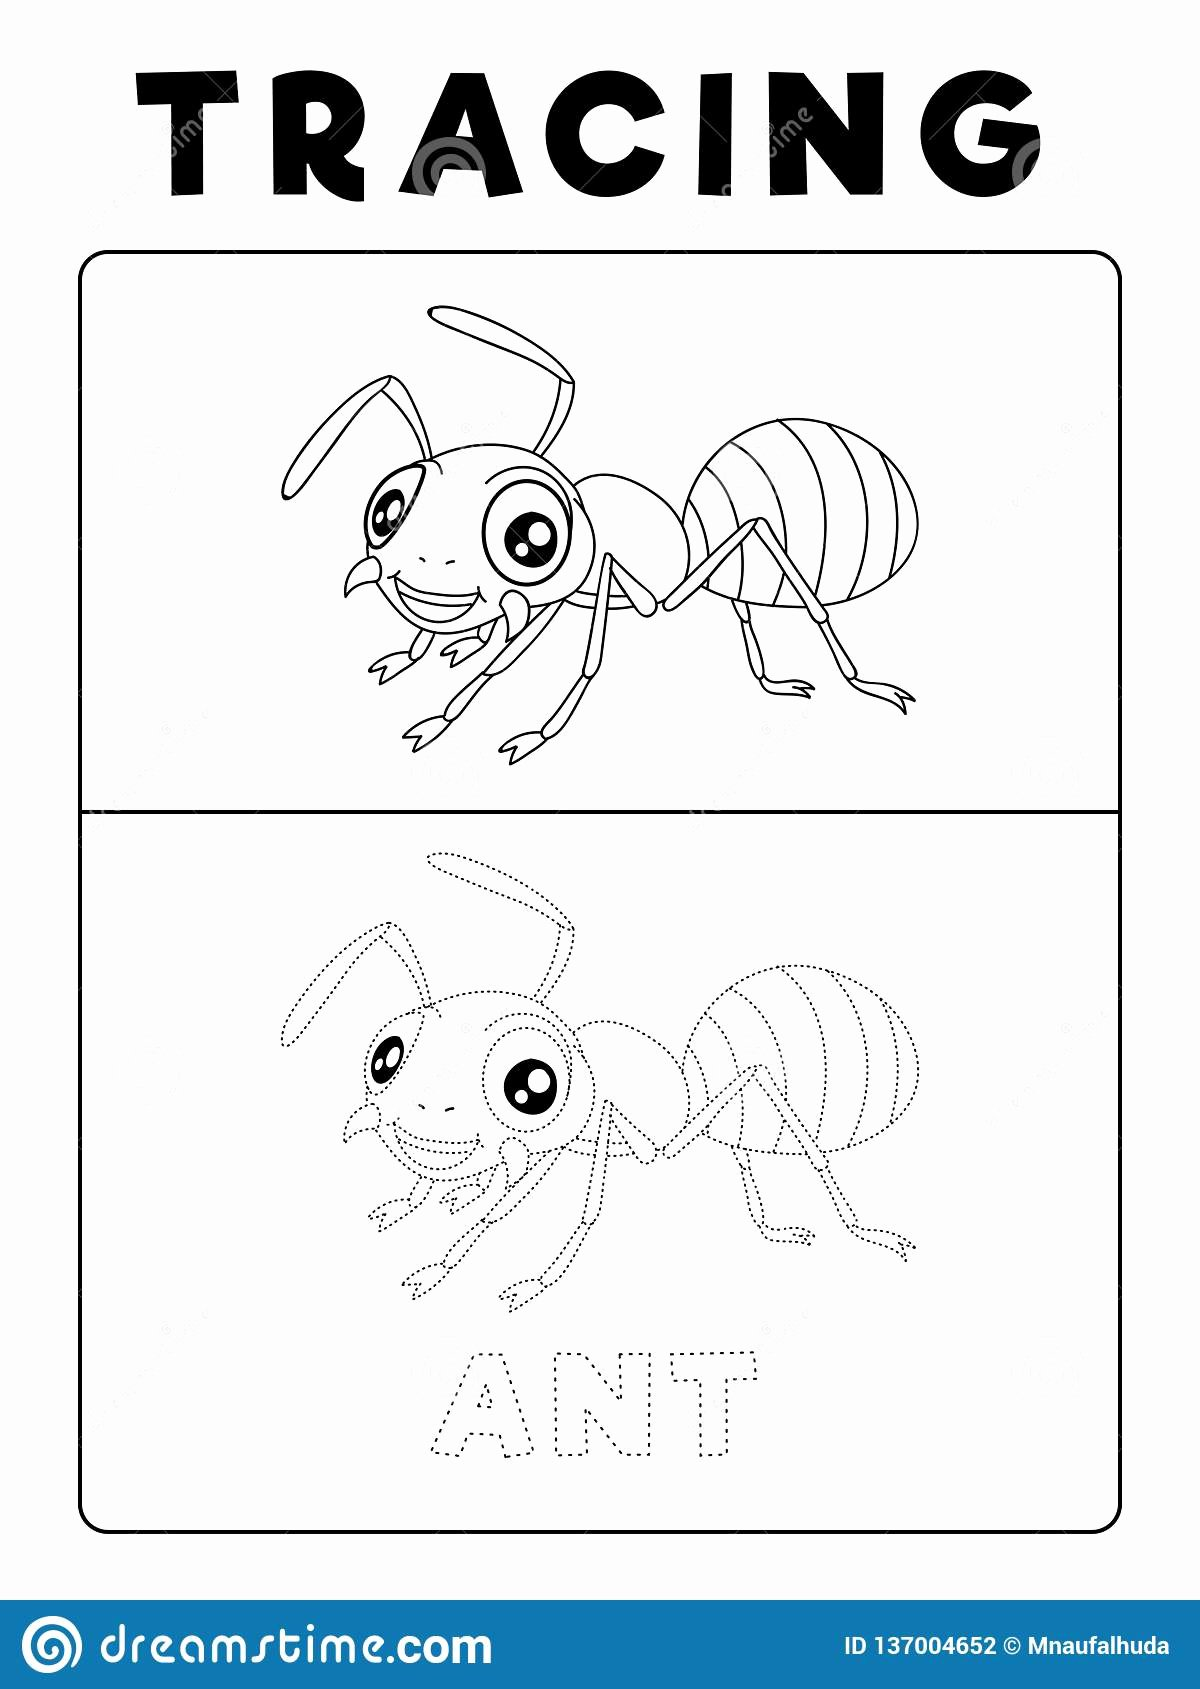 Ant Worksheets for Preschoolers Printable Funny Ant Insect Animal Tracing Book with Example Preschool